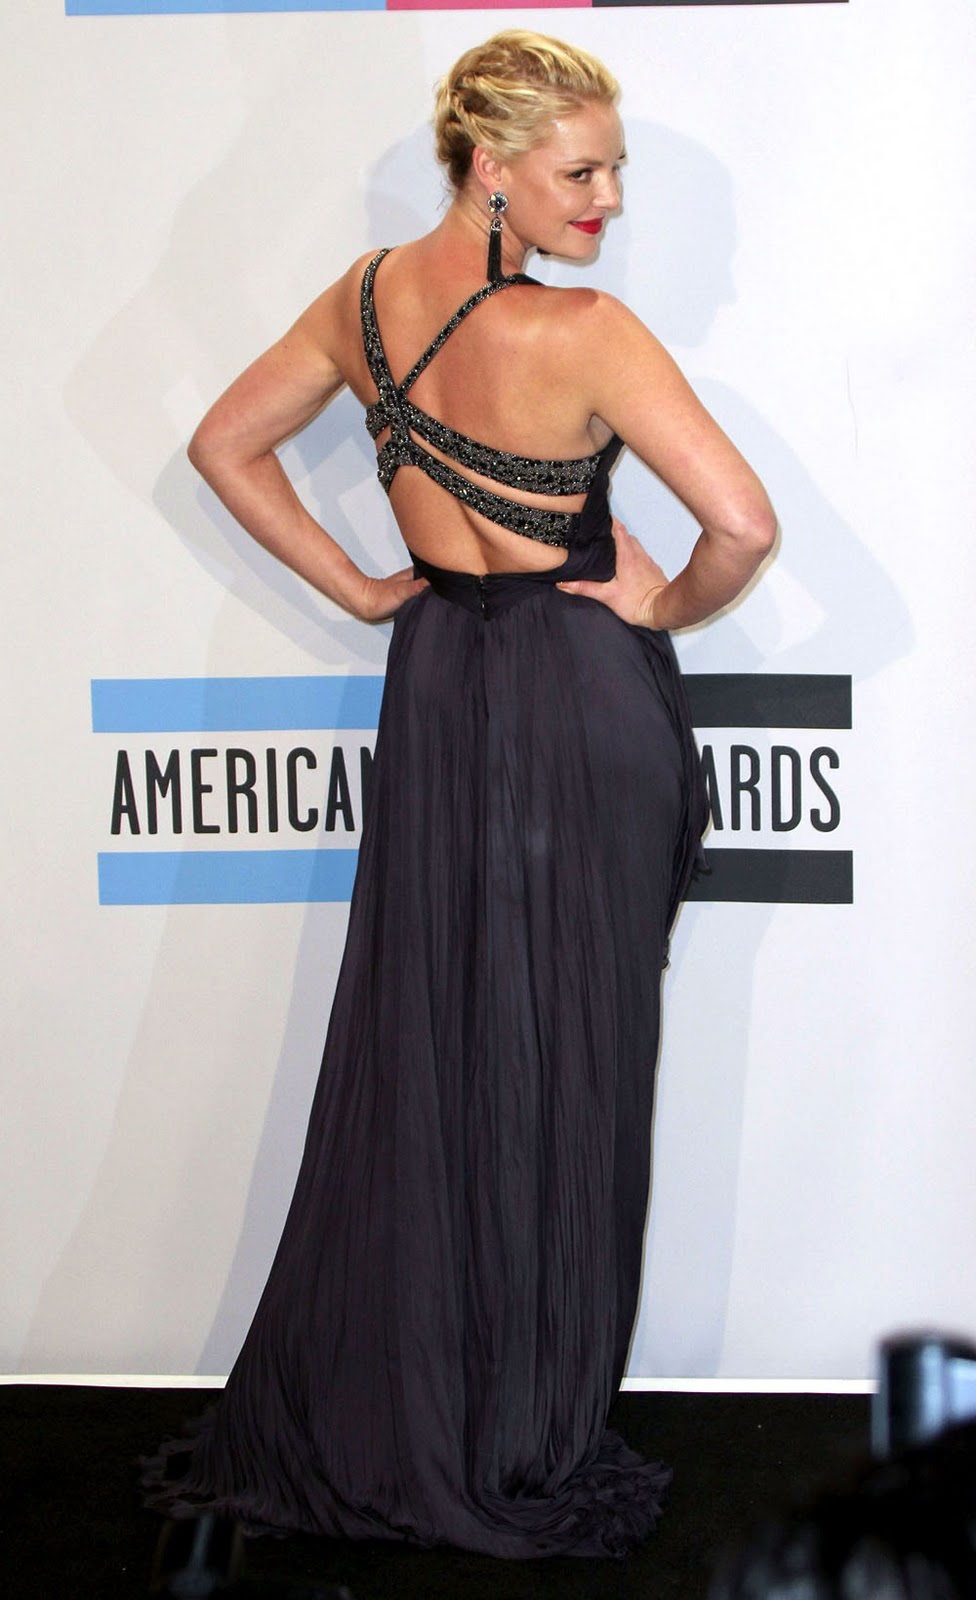 27 Dresses Actress Katherine Heigl Drops Out Some Stunning